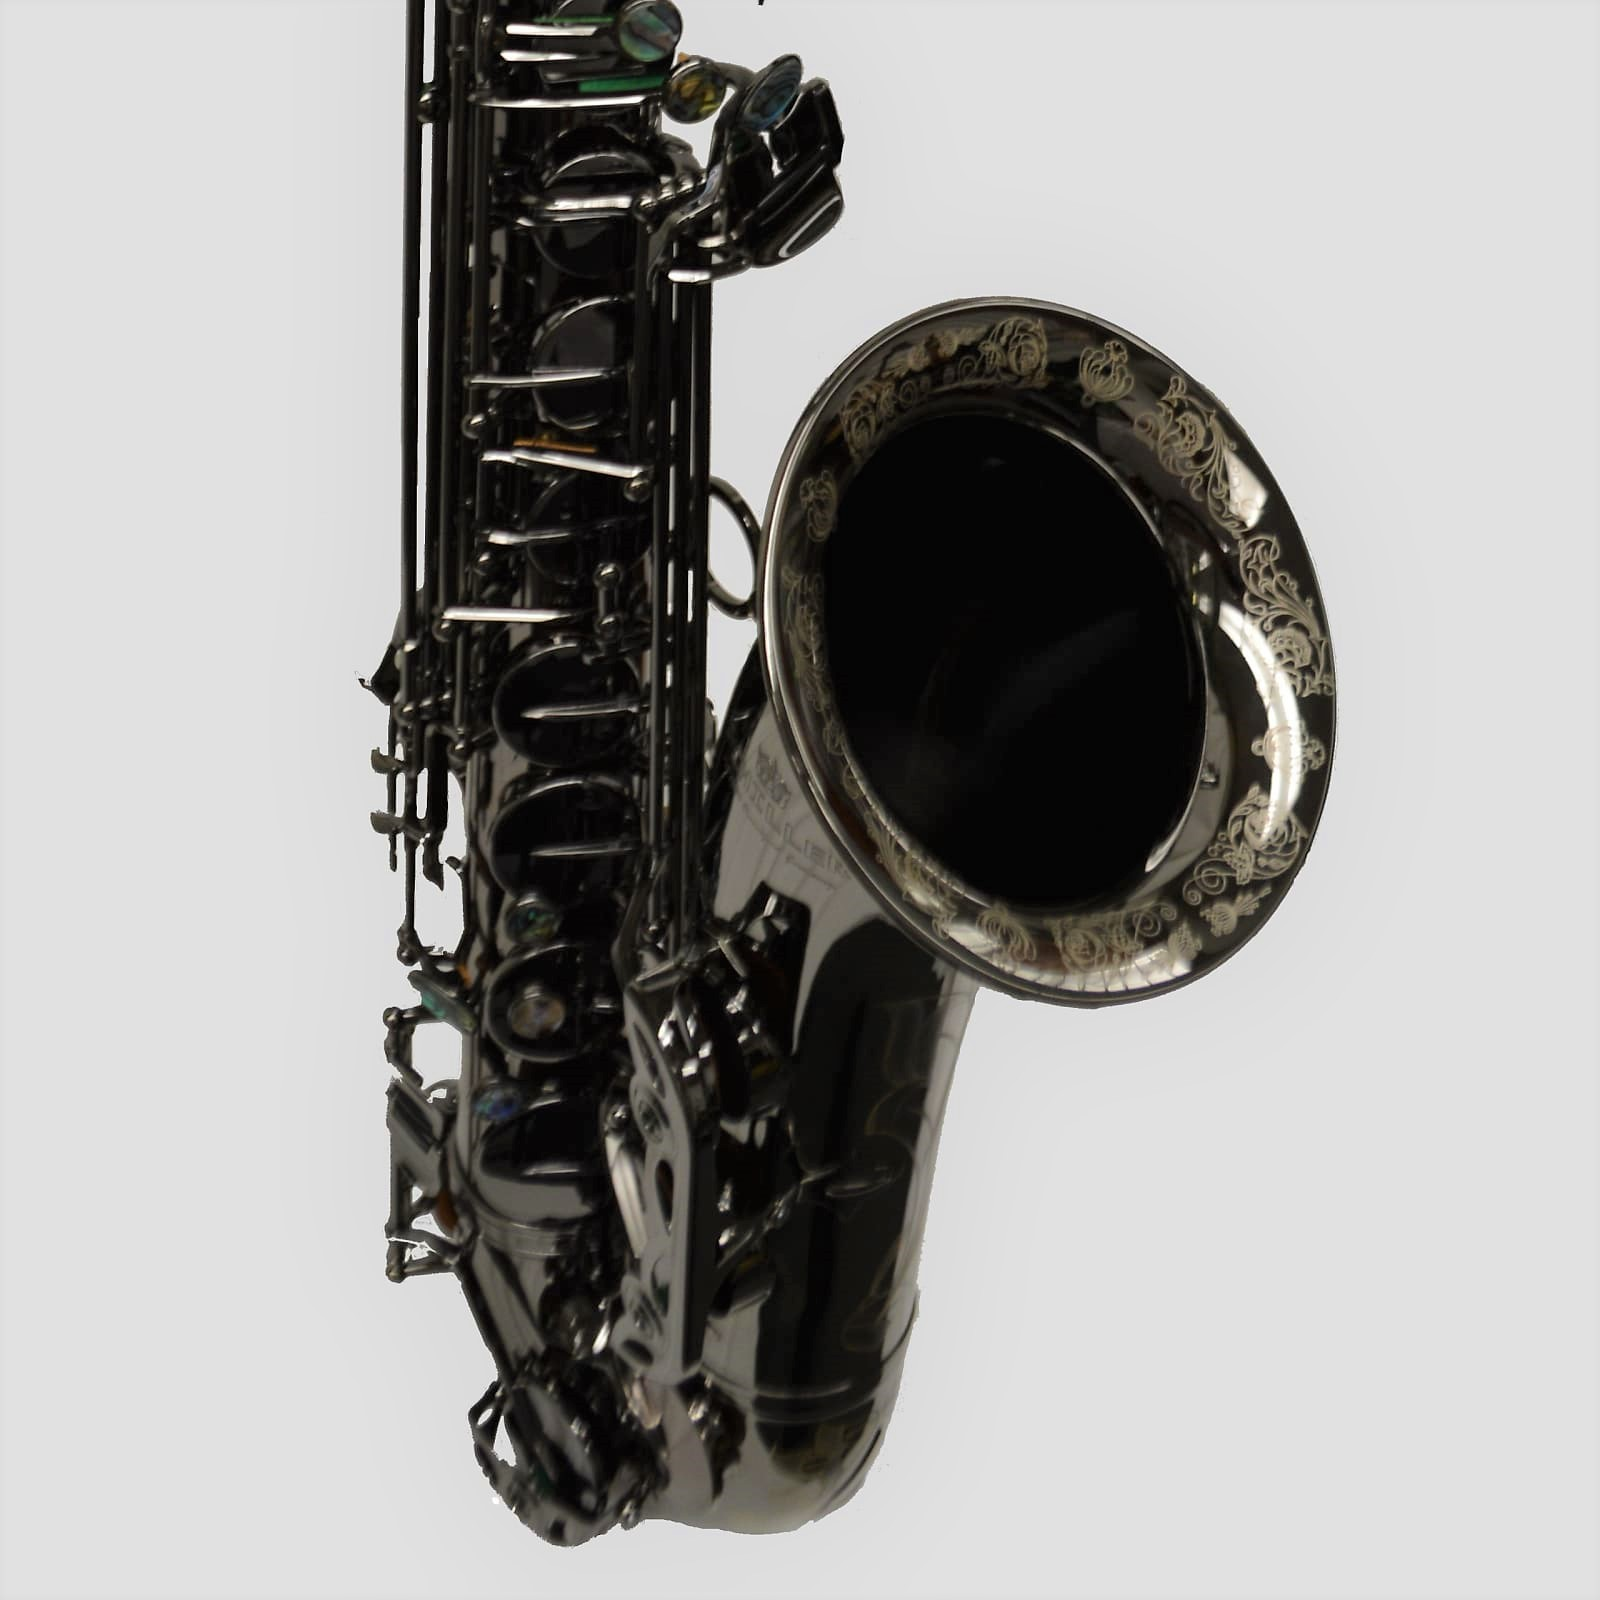 Elite V Tenor Black Nickel Big Bell